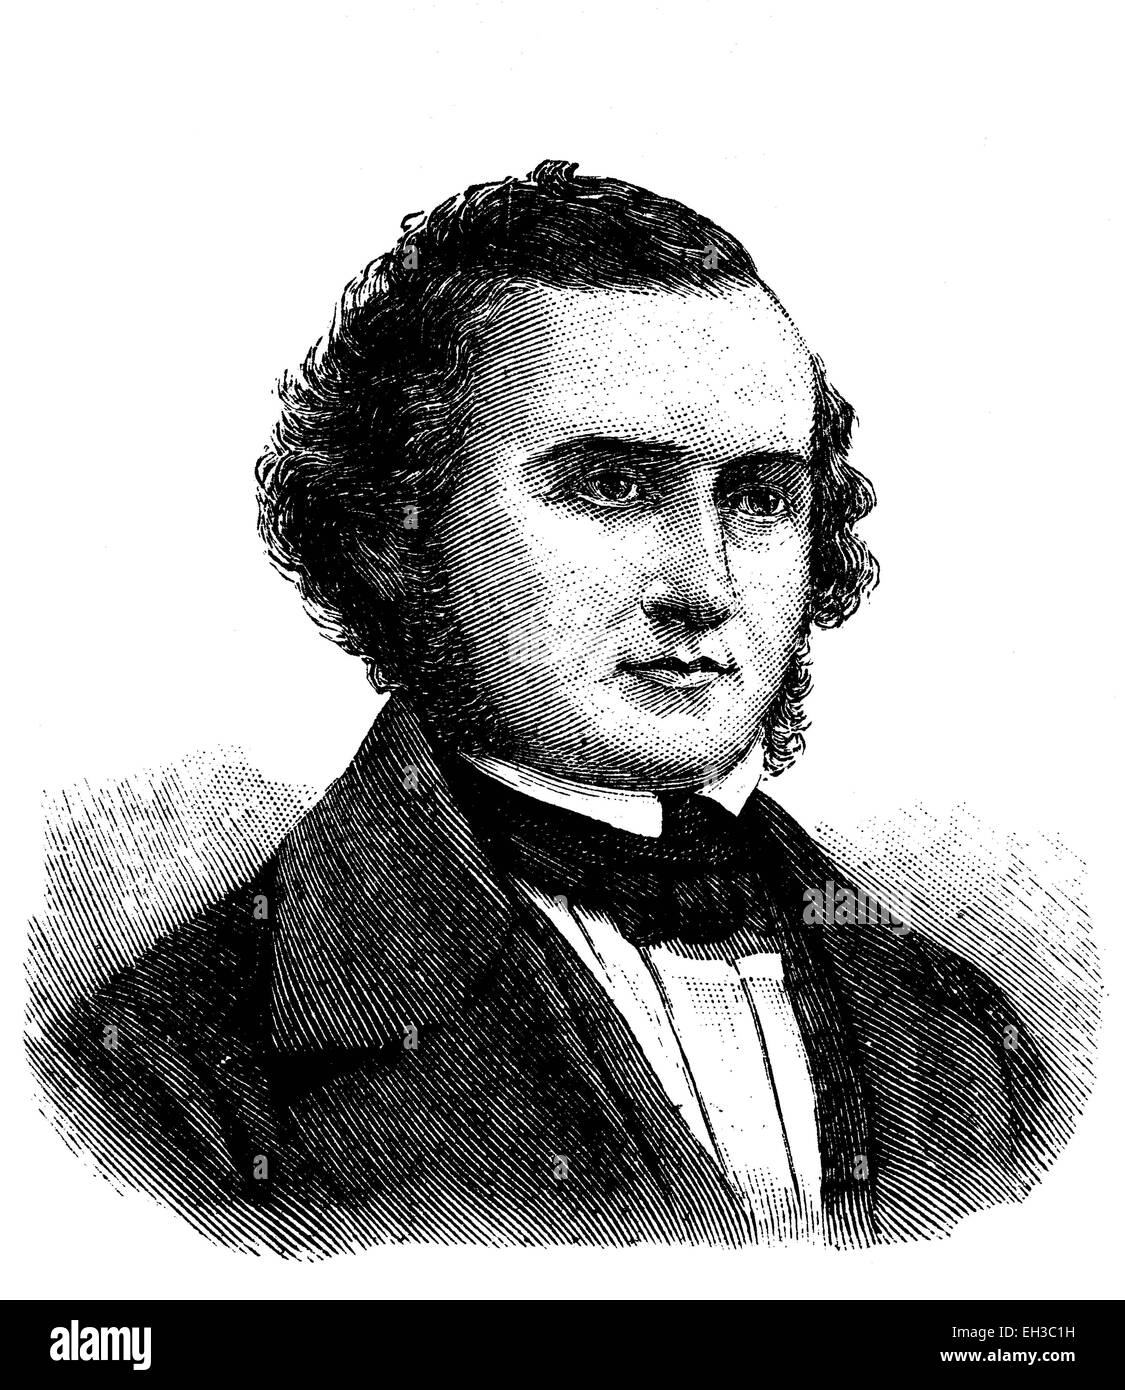 Carl Gotthelf Todt or Carl Gottlob Todt, 1803 - 1852, German jurist and politician, wood engraving, around 1880 - Stock Image